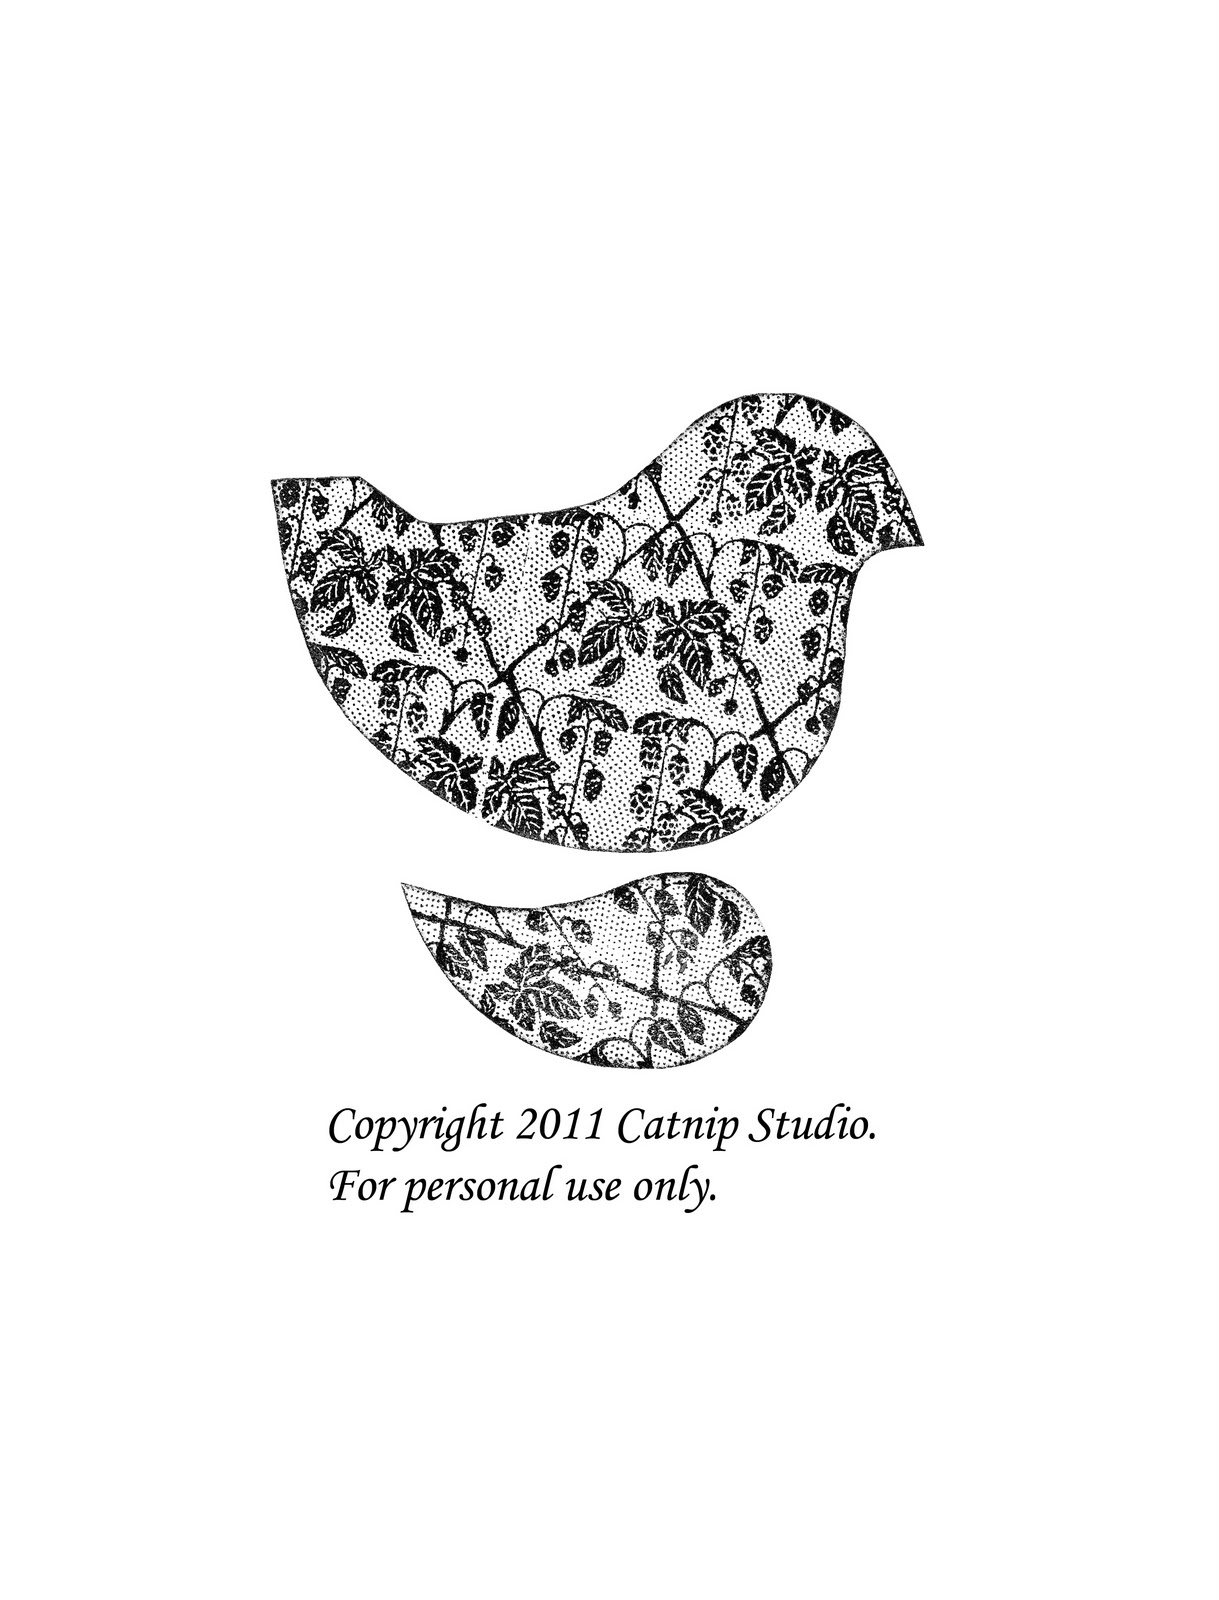 turtle dove template - catnip studio chronicles french hens turtle doves and a